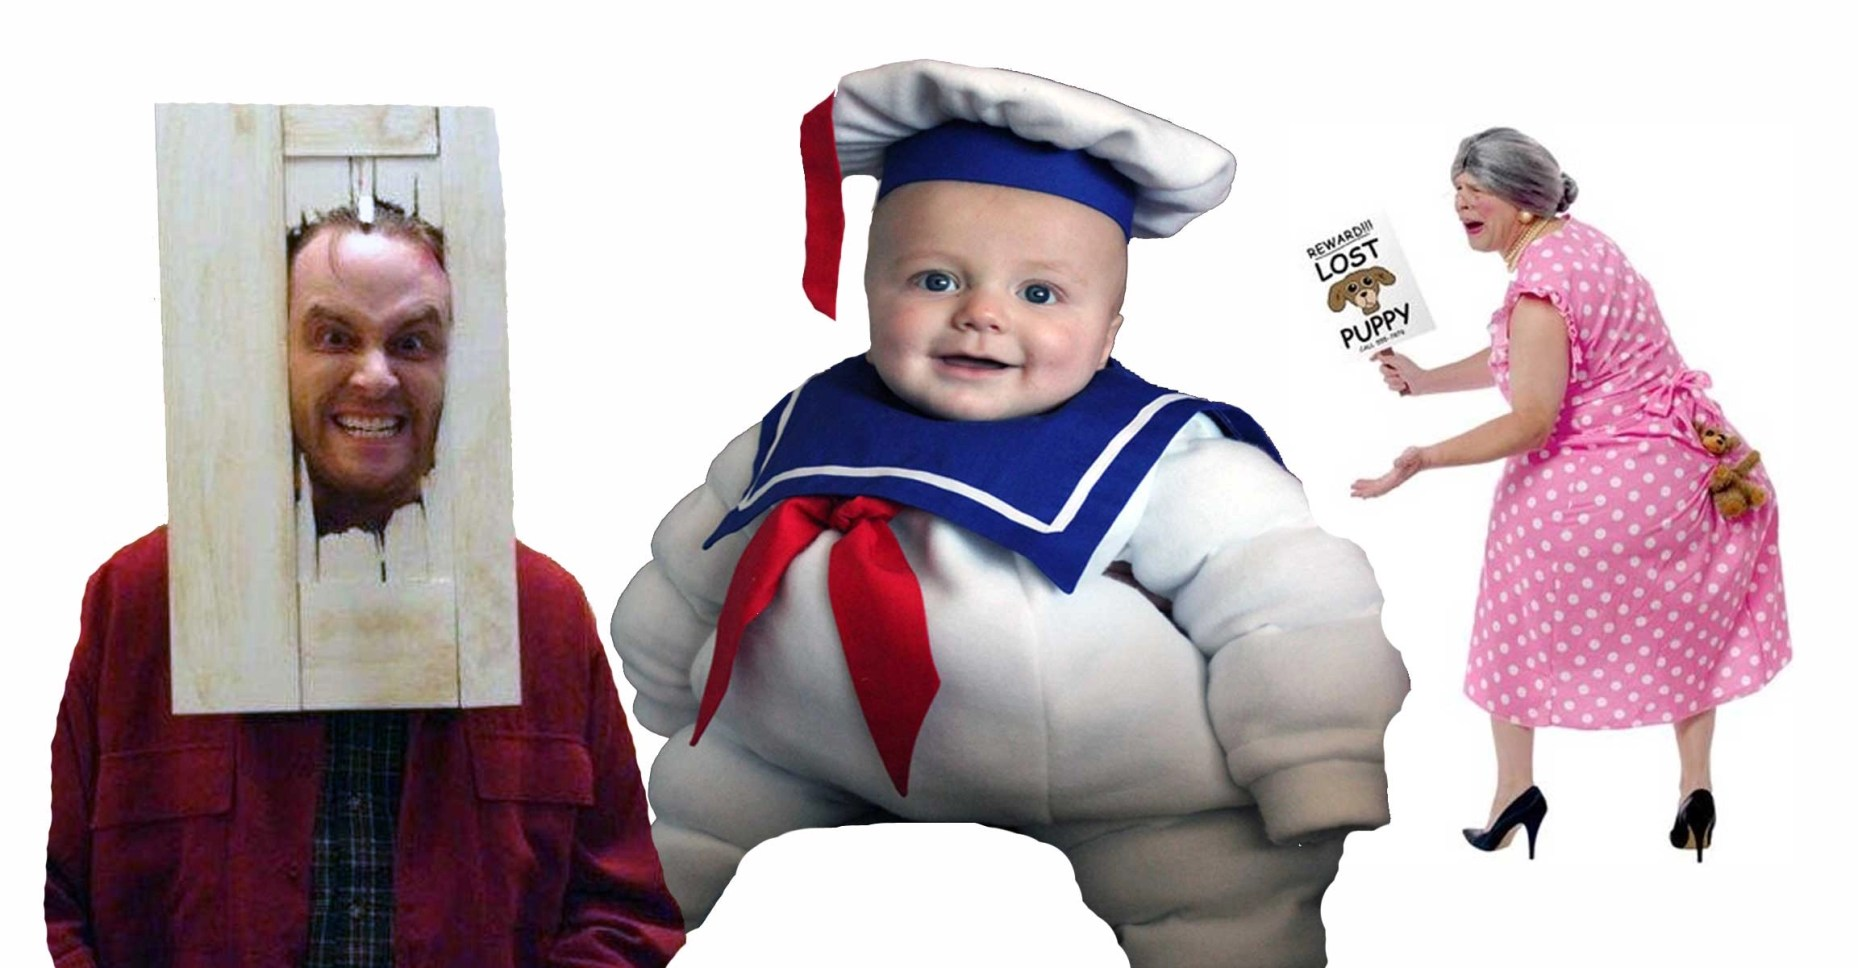 best halloween costumes ever share yours